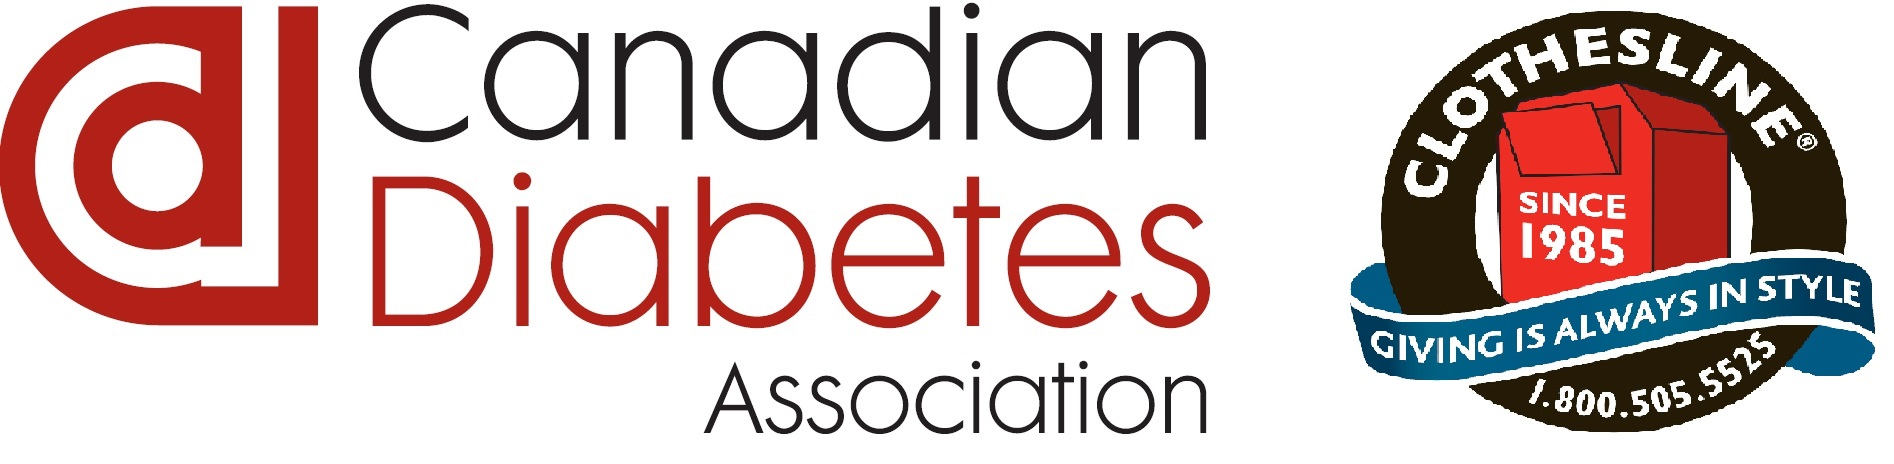 CanadianDiabetesAssoc_logo